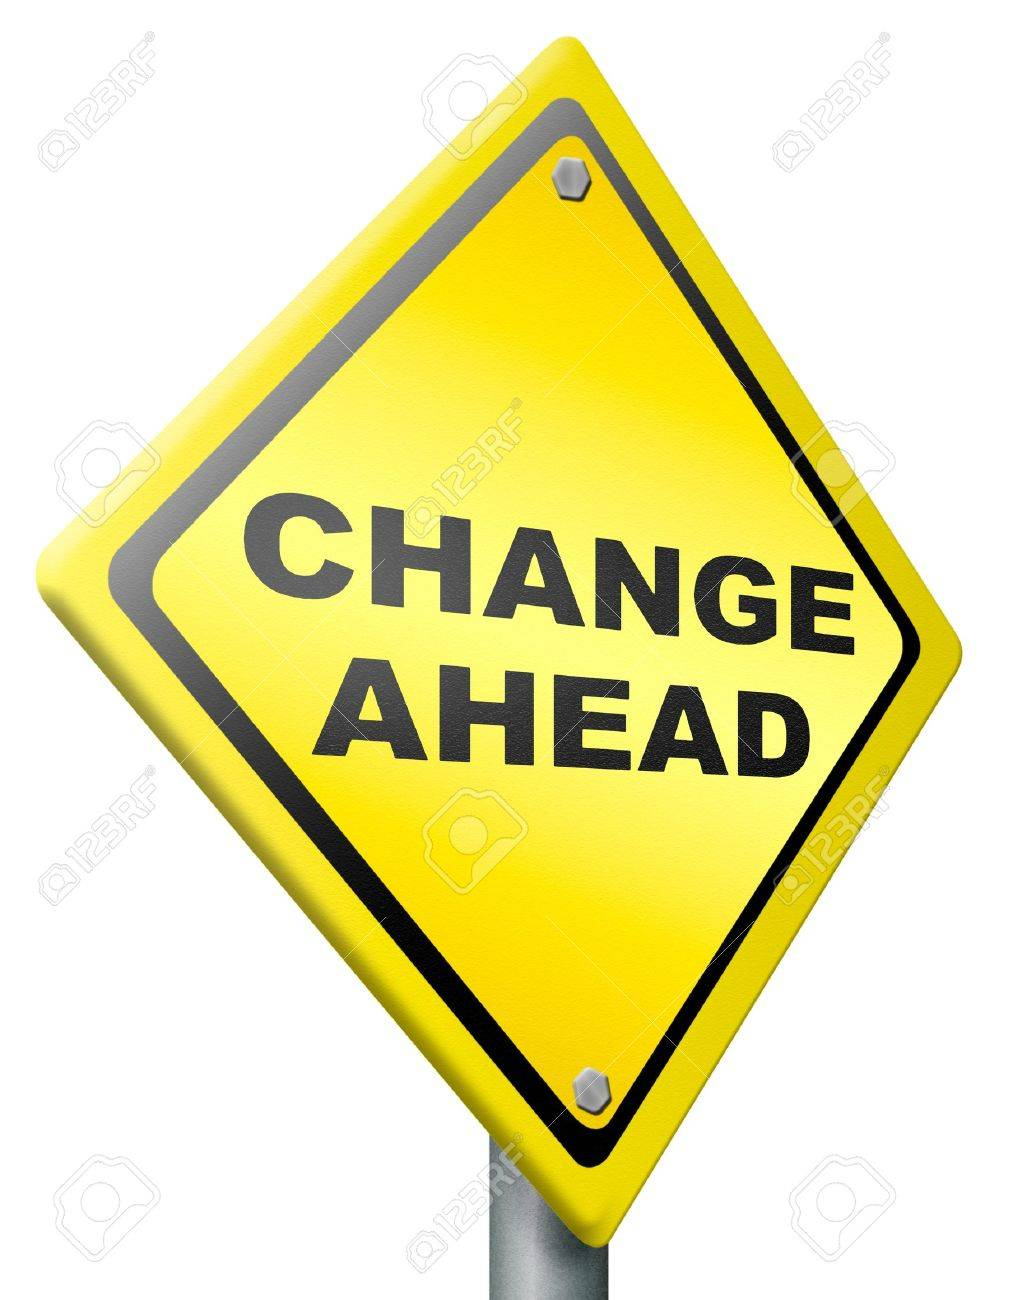 change ahead changes and improvement making thing better for the future positive evolution improve to the best road sign with text Stock Photo - 11289492